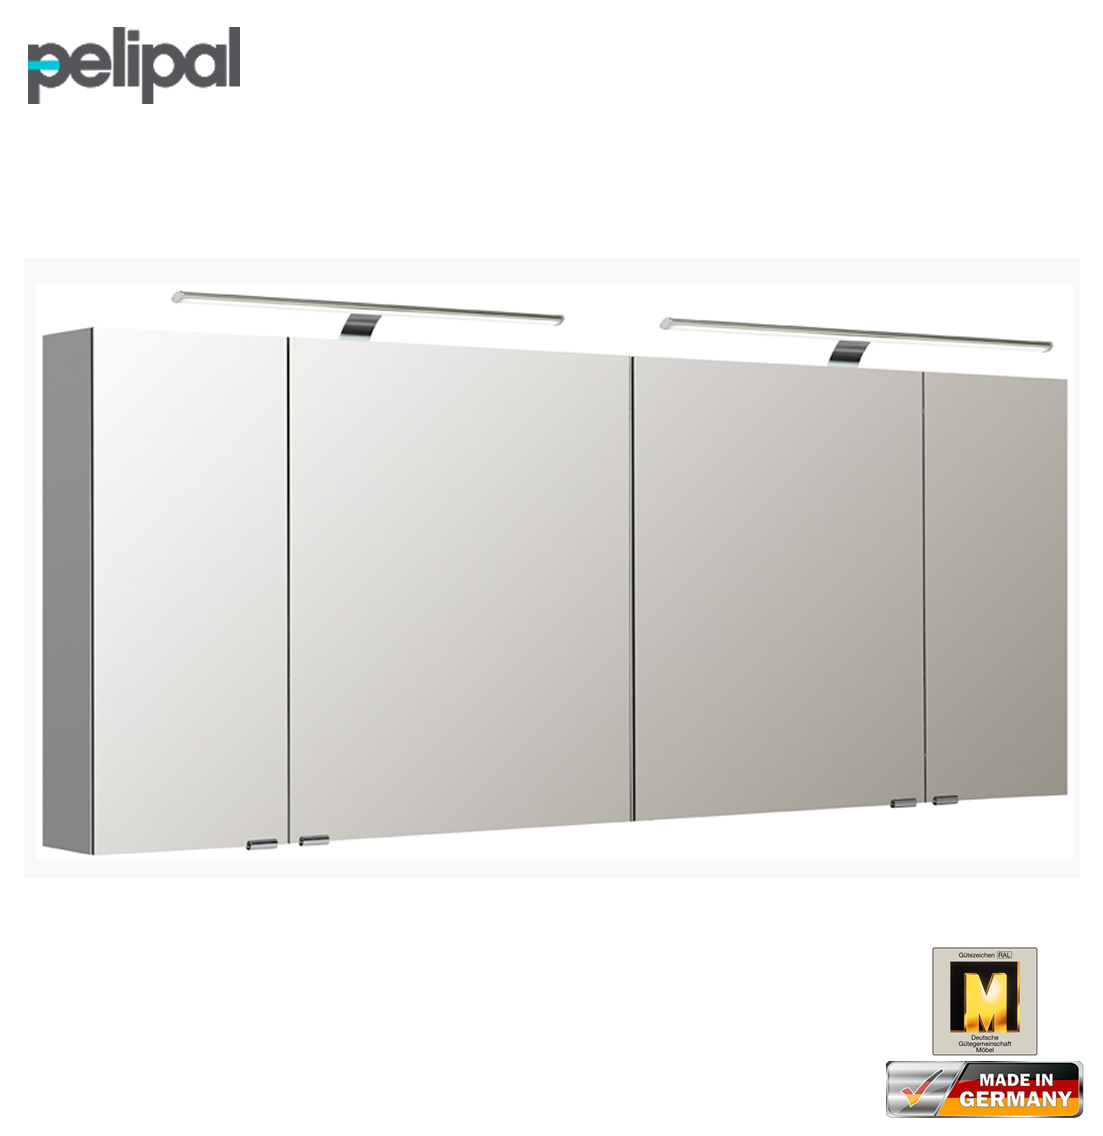 pelipal neutraler spiegelschrank 180 cm mit led aufsatzleuchten s5 spsd 34 impuls home. Black Bedroom Furniture Sets. Home Design Ideas